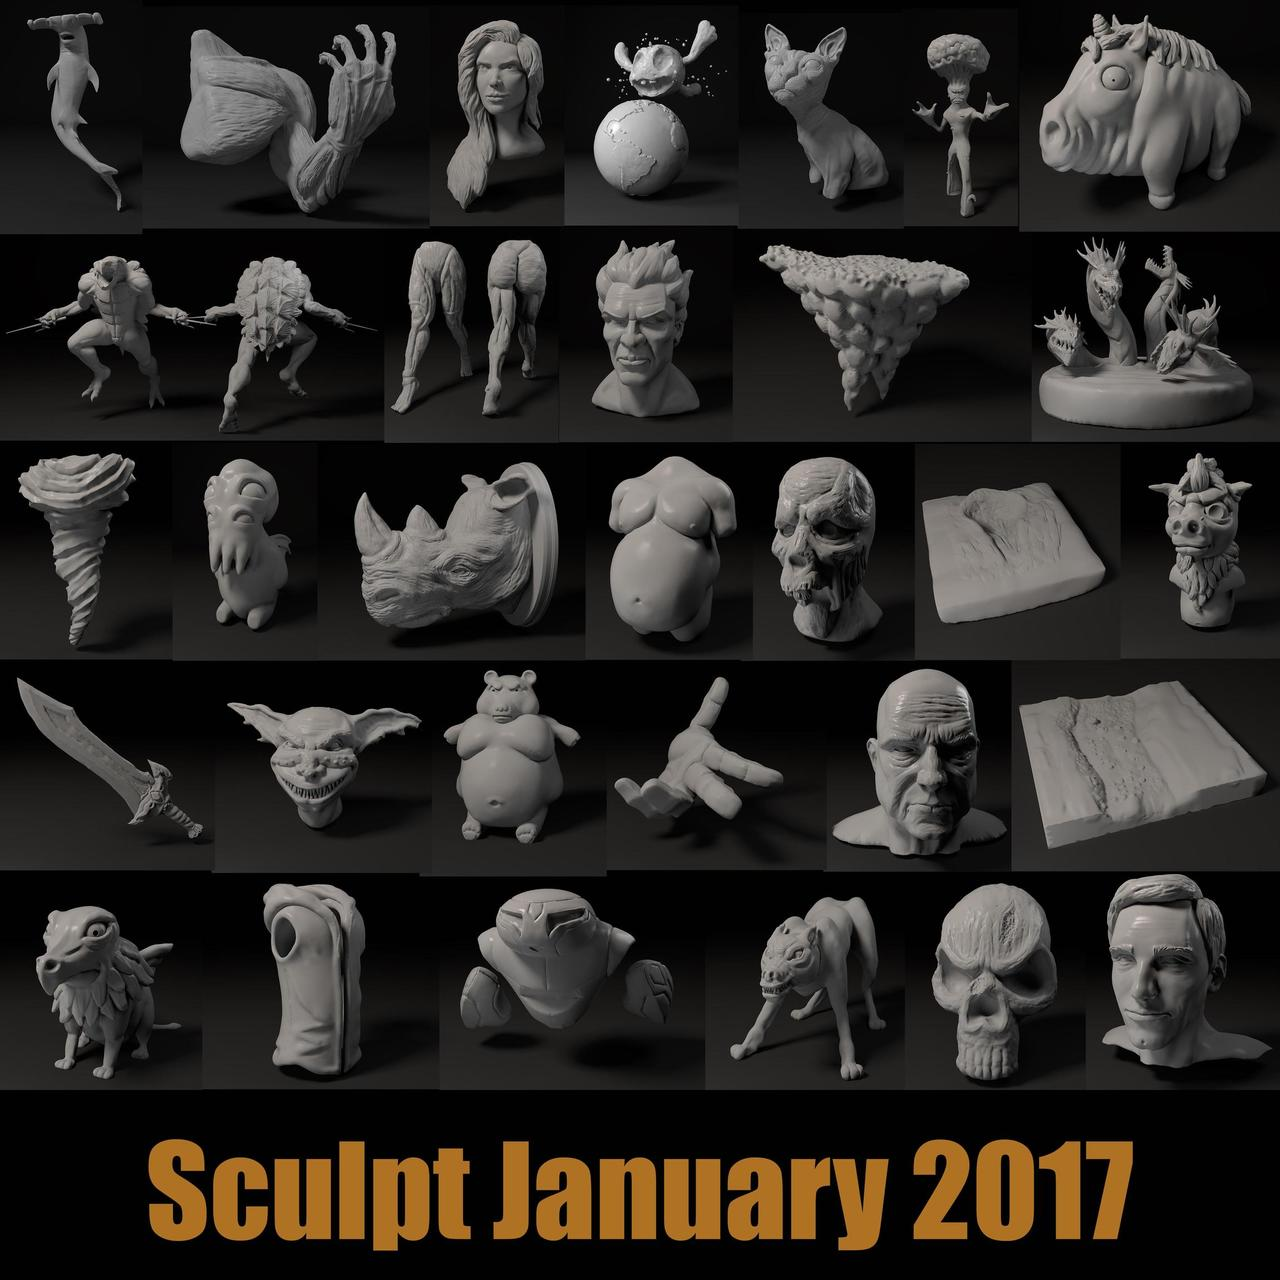 SculptJanuary 2017